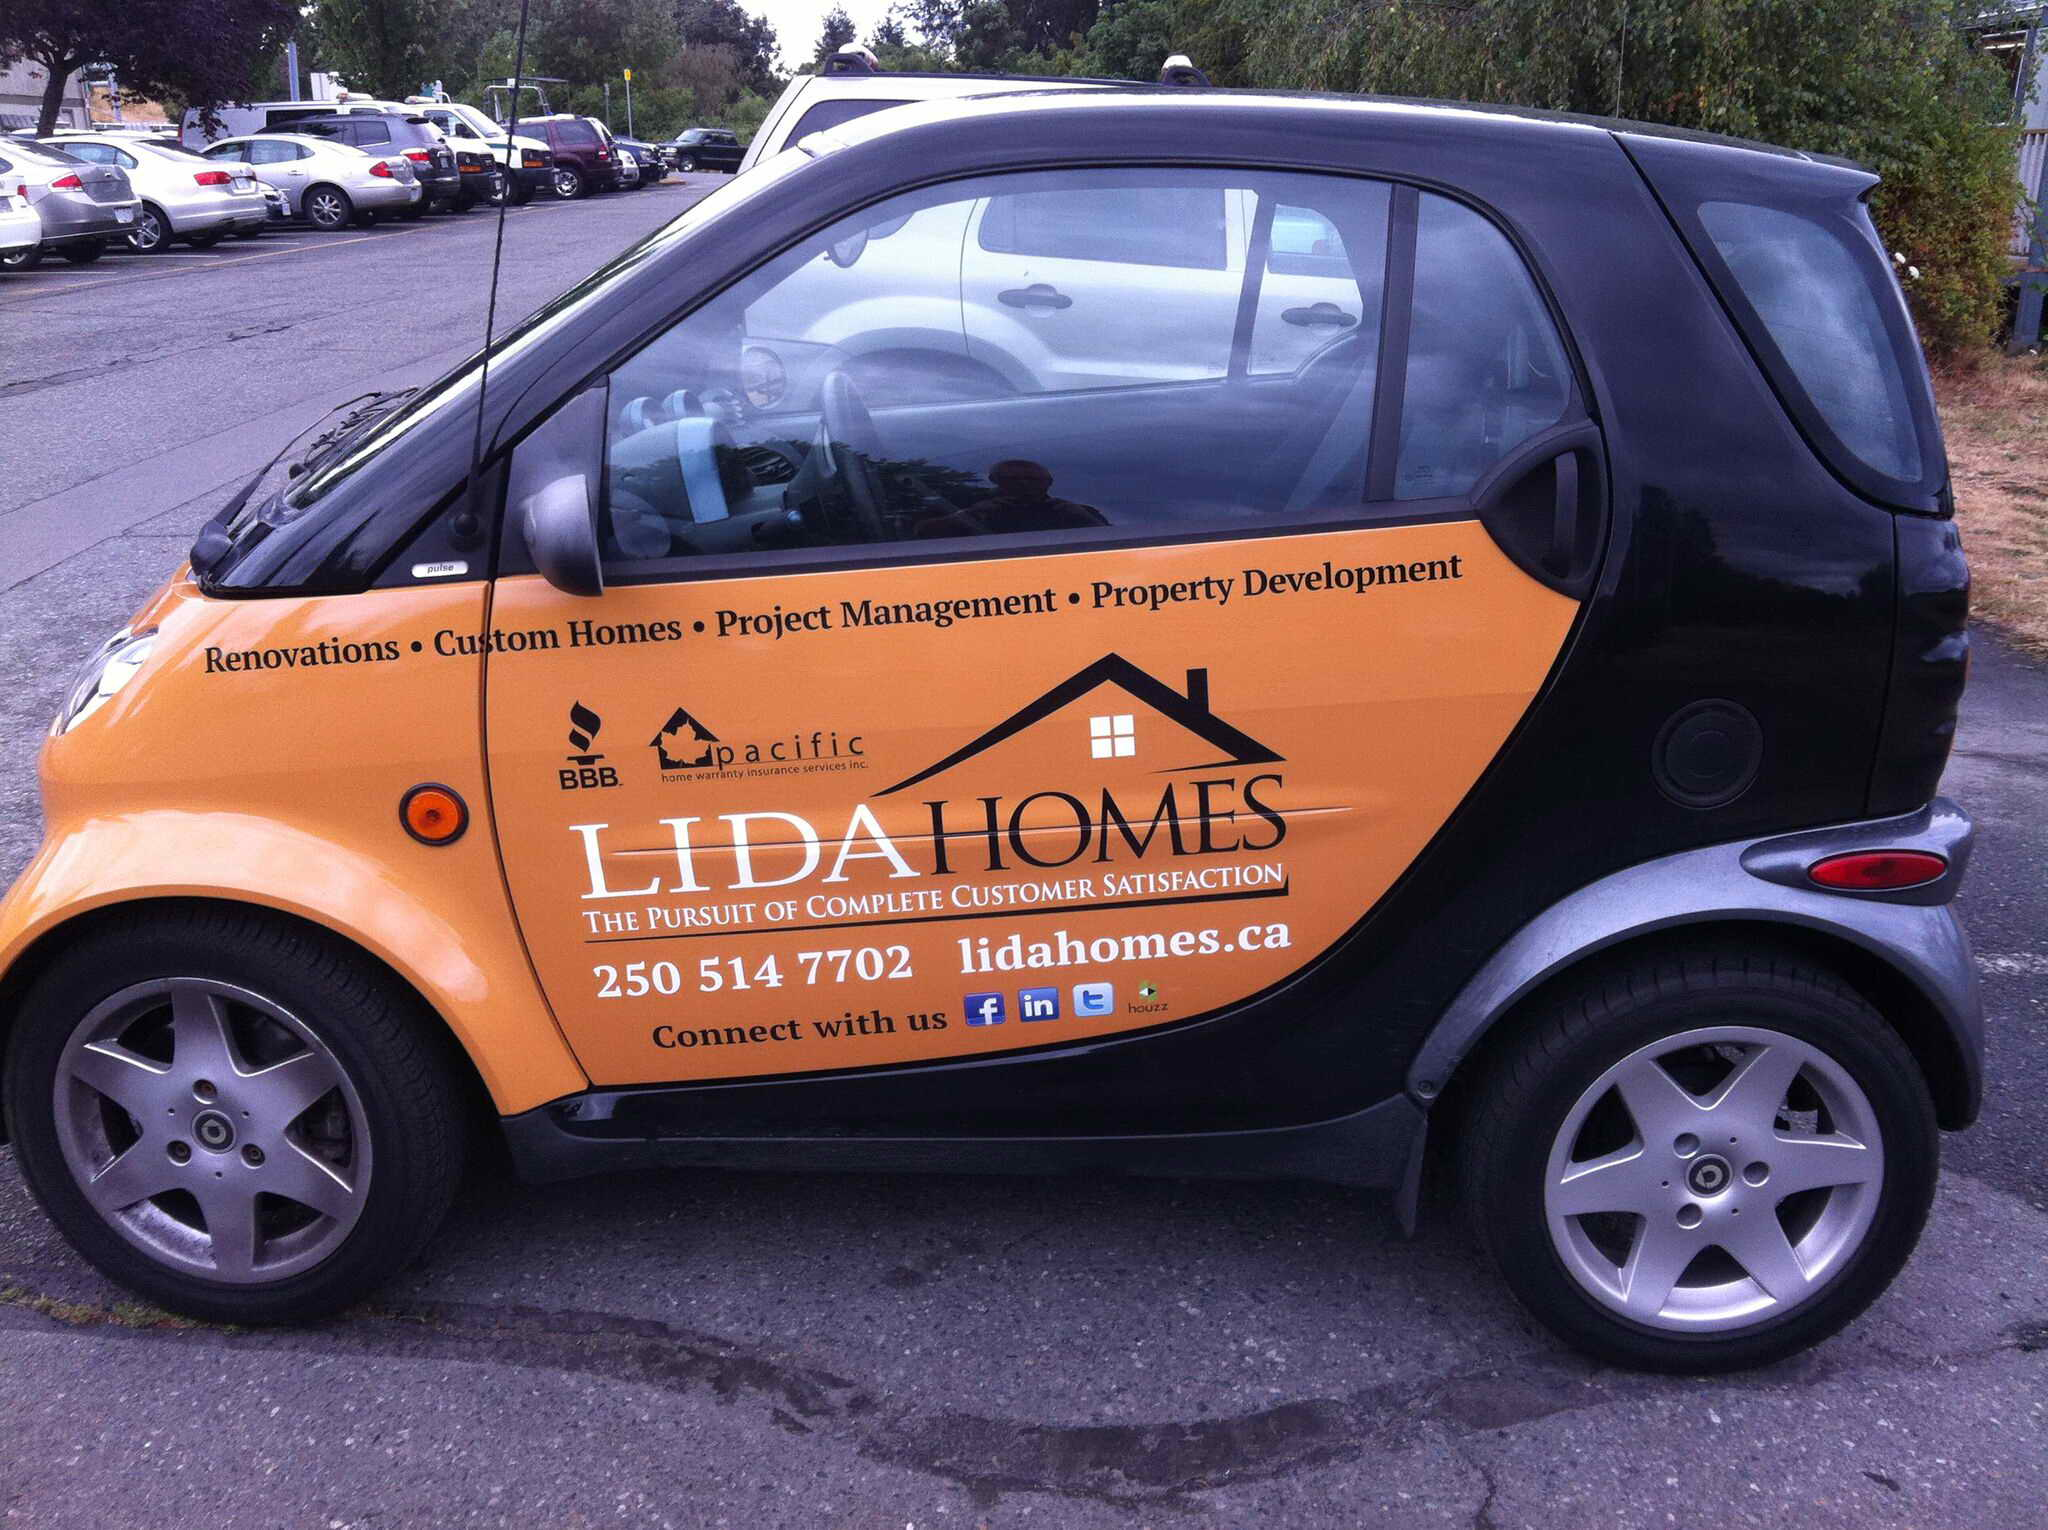 LIDA homes Smart car